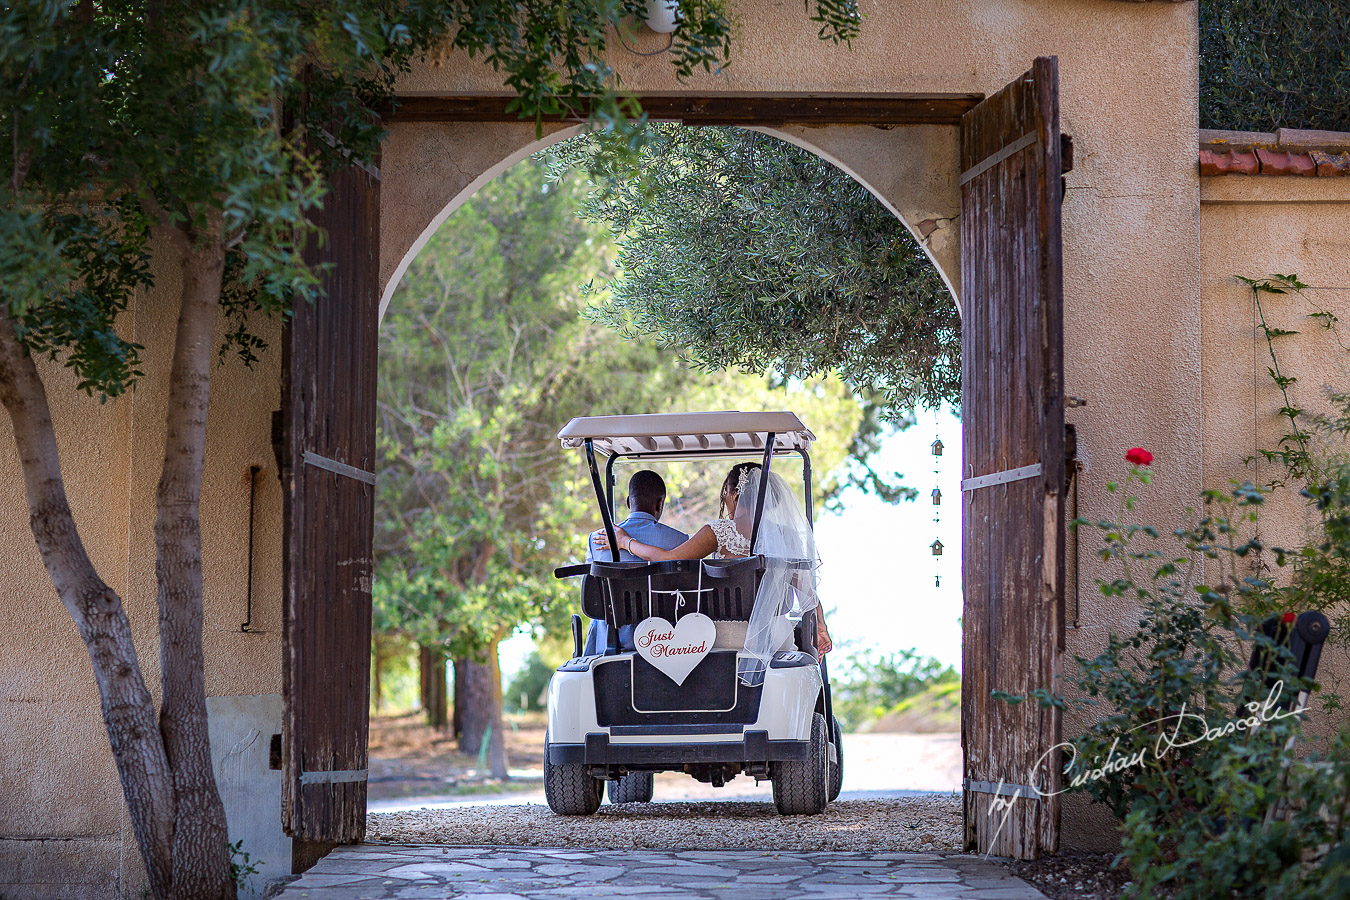 Bride and groom getting away in the bridal bug, moments captured at a wedding at Minthis Hills in Cyprus, by Cristian Dascalu.